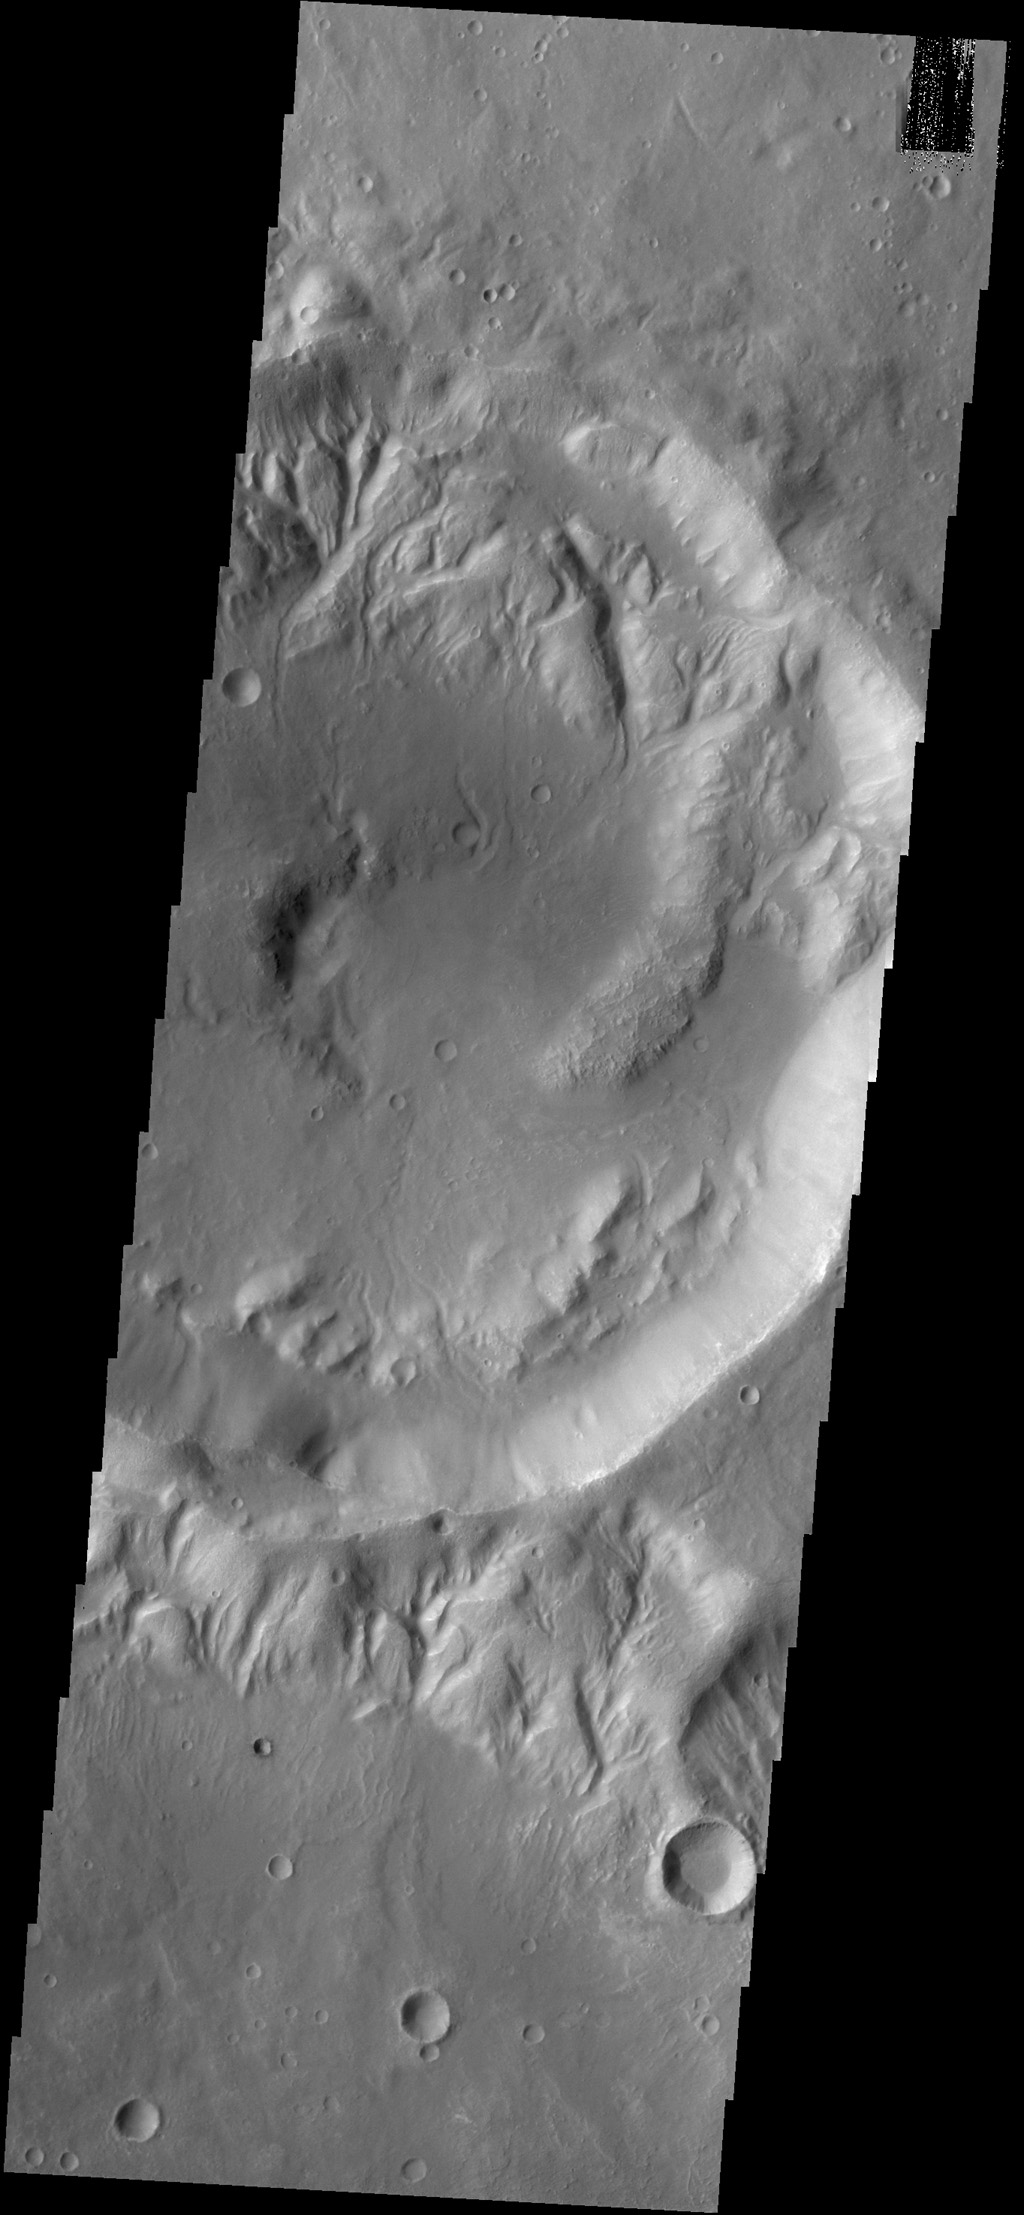 Multiple channels dissect the rim of this unnamed crater in Noachis Terra as seen by NASA's 2001 Mars Odyssey spacecraft.